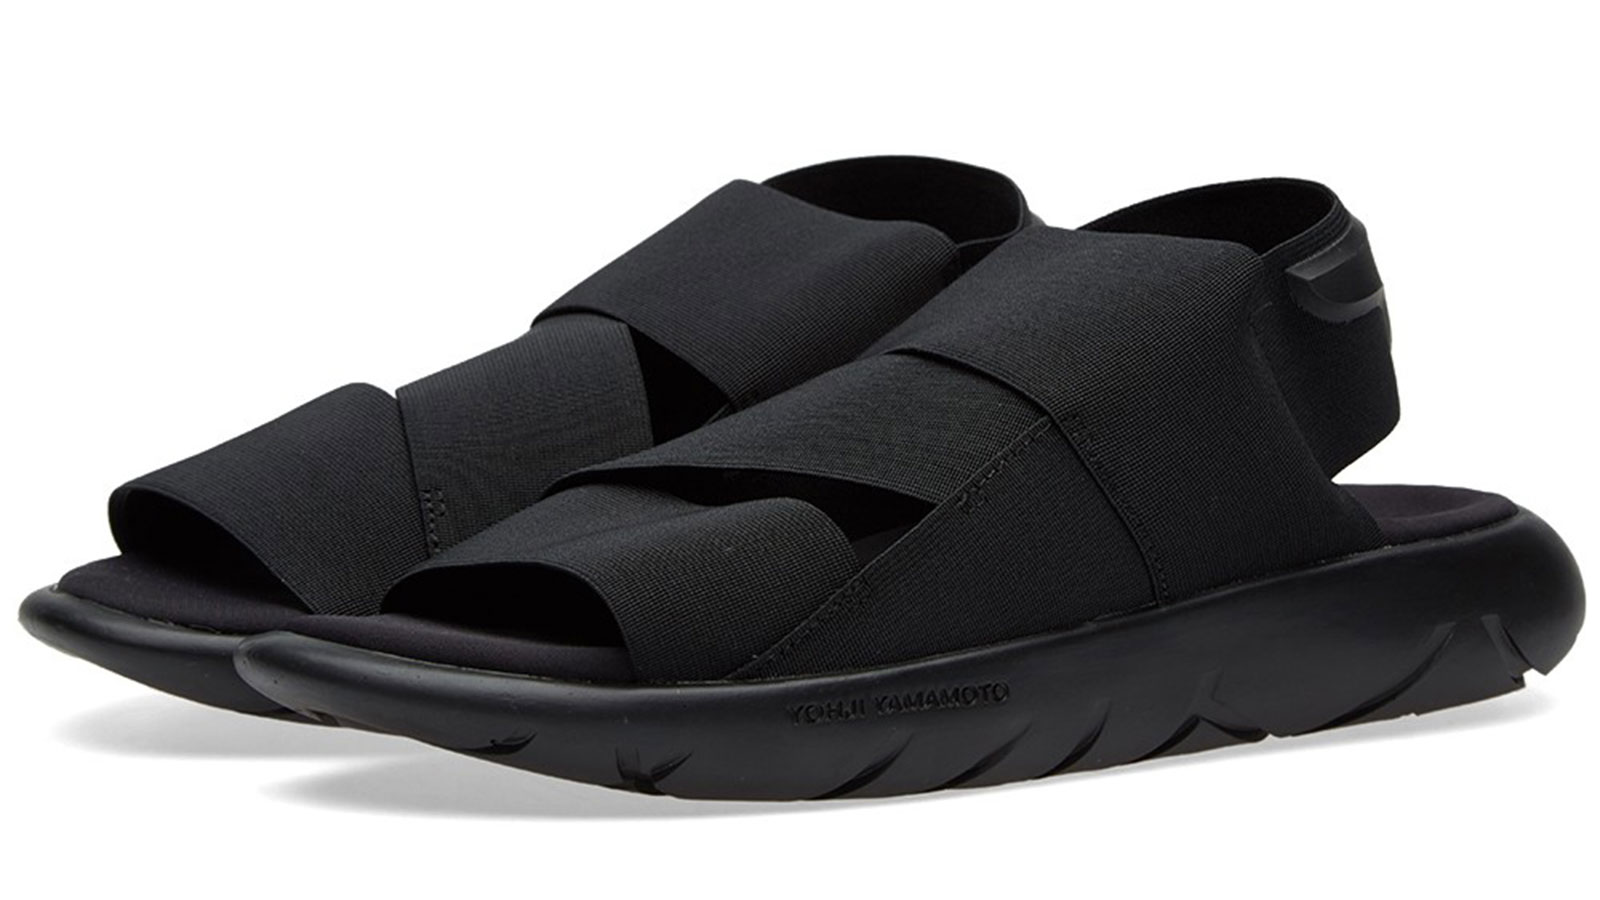 23 Of The Best Sandals for Men You Can Buy Today